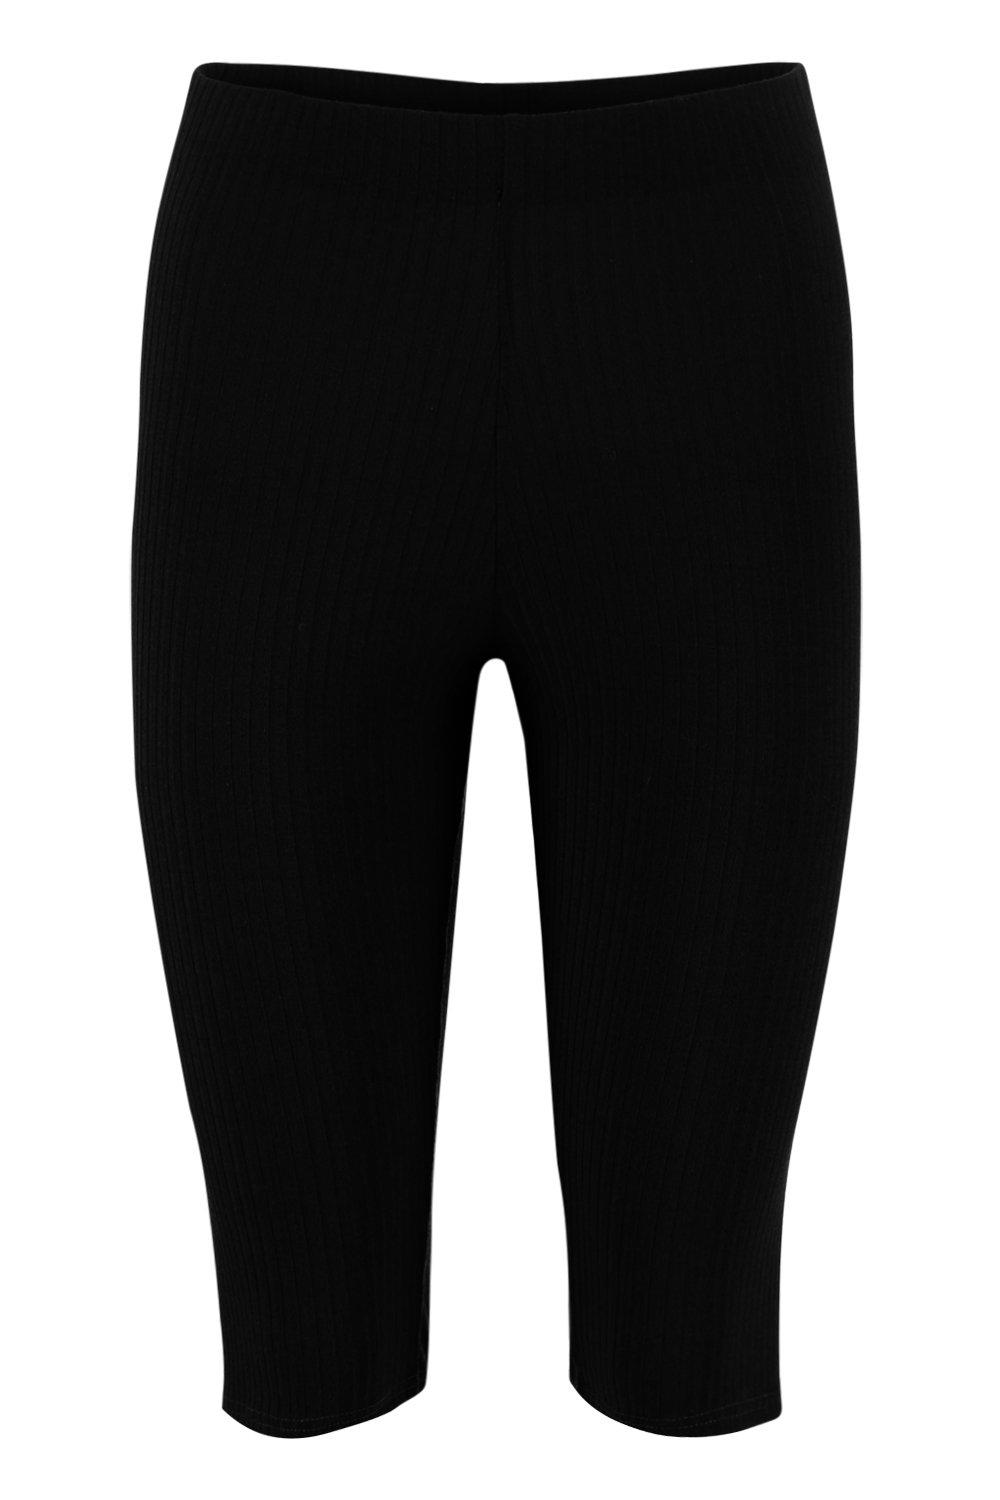 Short Cycling Rib Longline black Knit 7nBpxUB1